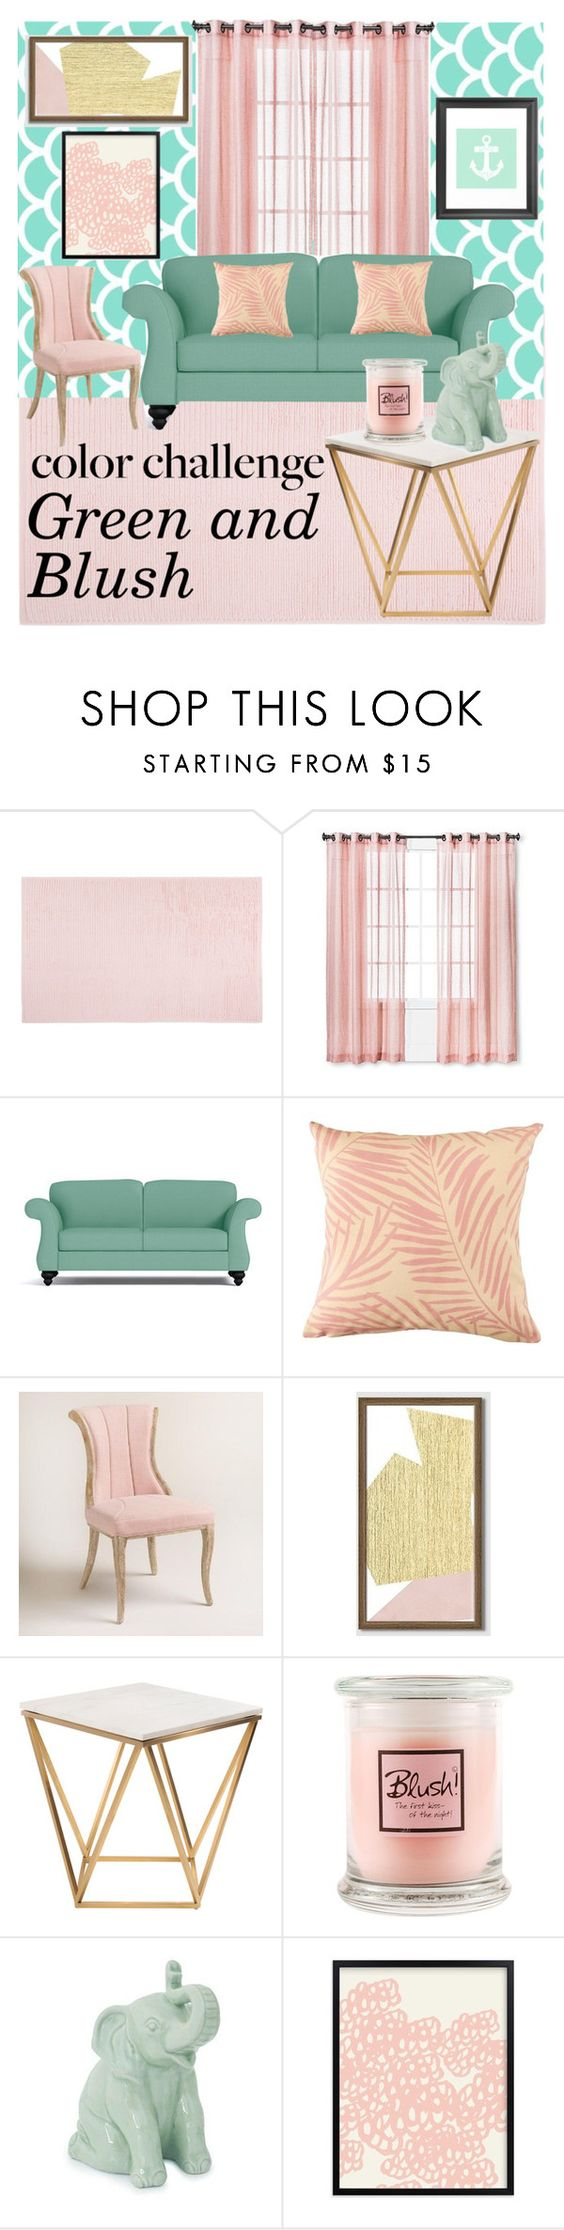 Threshold home decor shop for threshold home decor on polyvore -  Green And Blush By Prigelprasojo Liked On Polyvore Featuring Interior Interiors